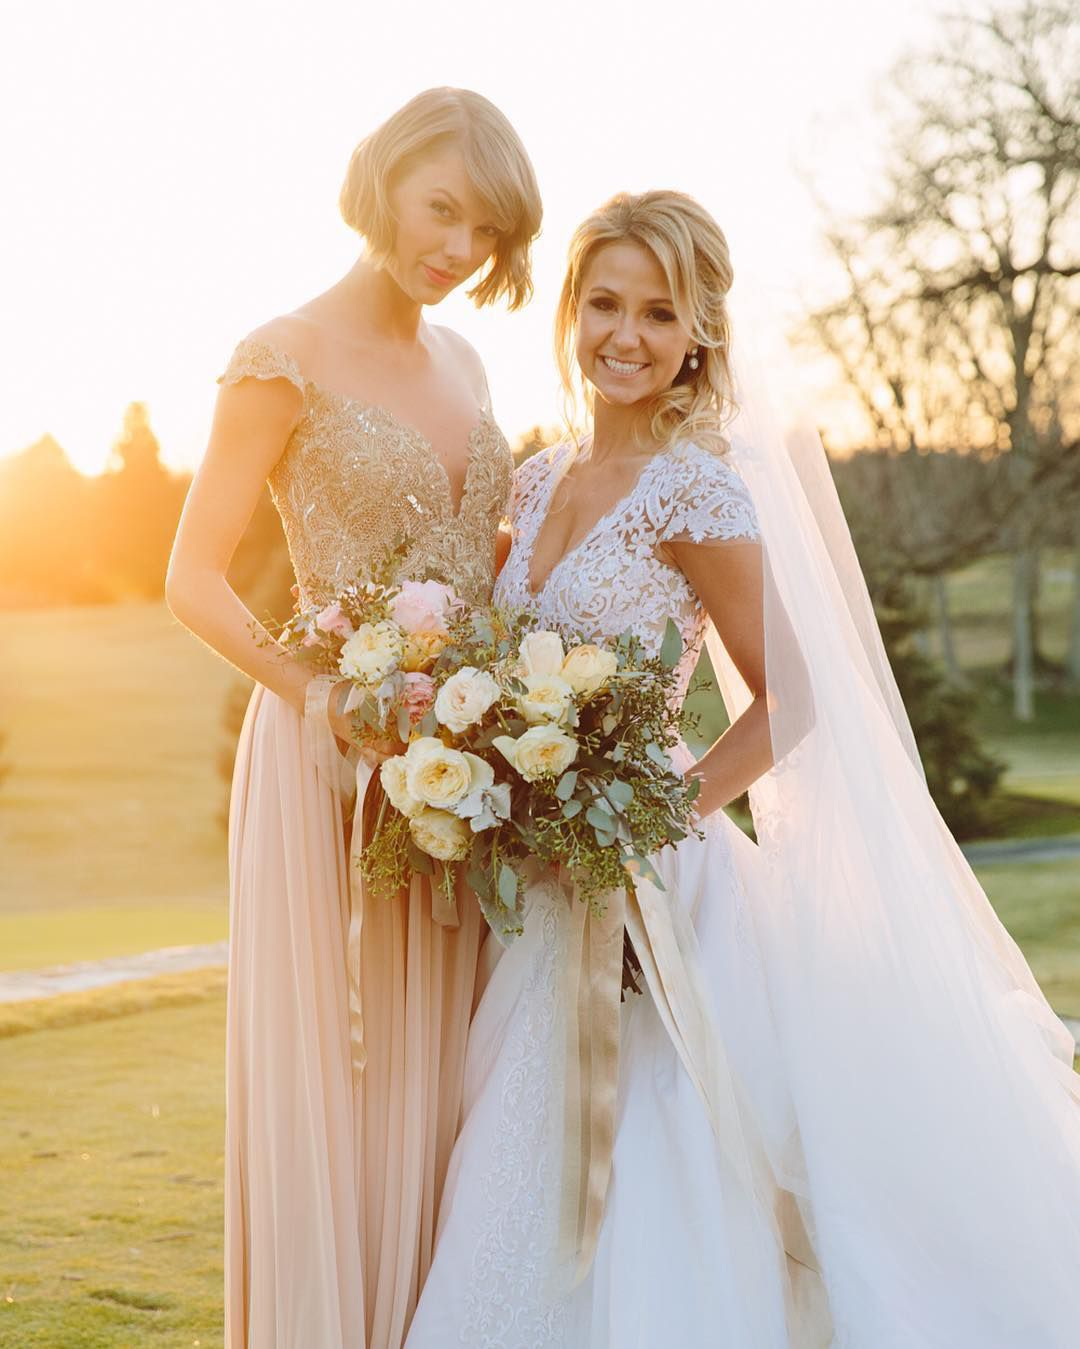 10 Best Celebrity Wedding Guest Dresses: 49 Times Celebrities Were Bridesmaids